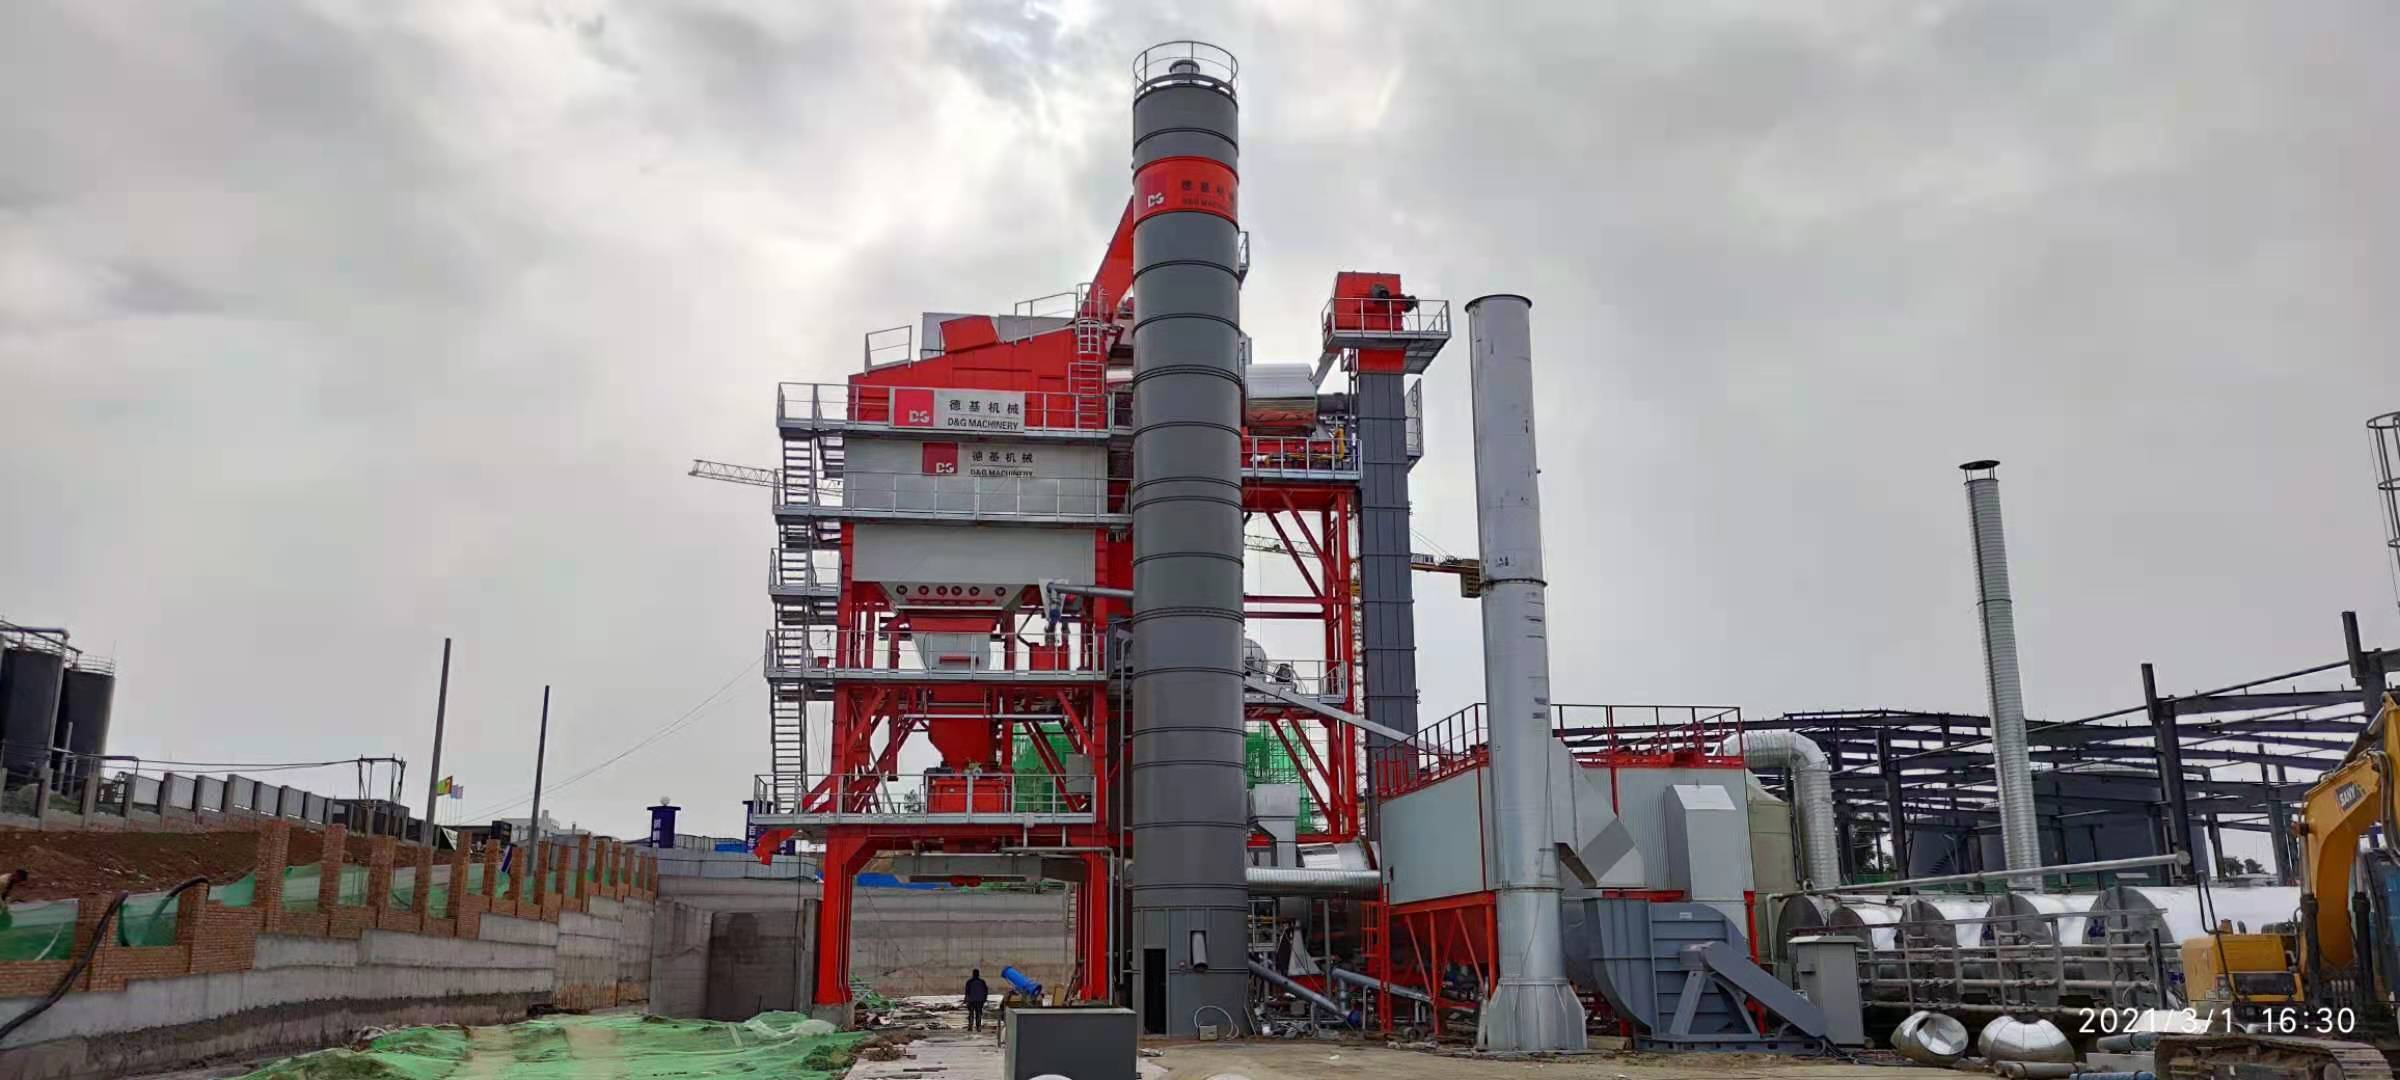 How to Choose the Site for Asphalt Mixing Plant?